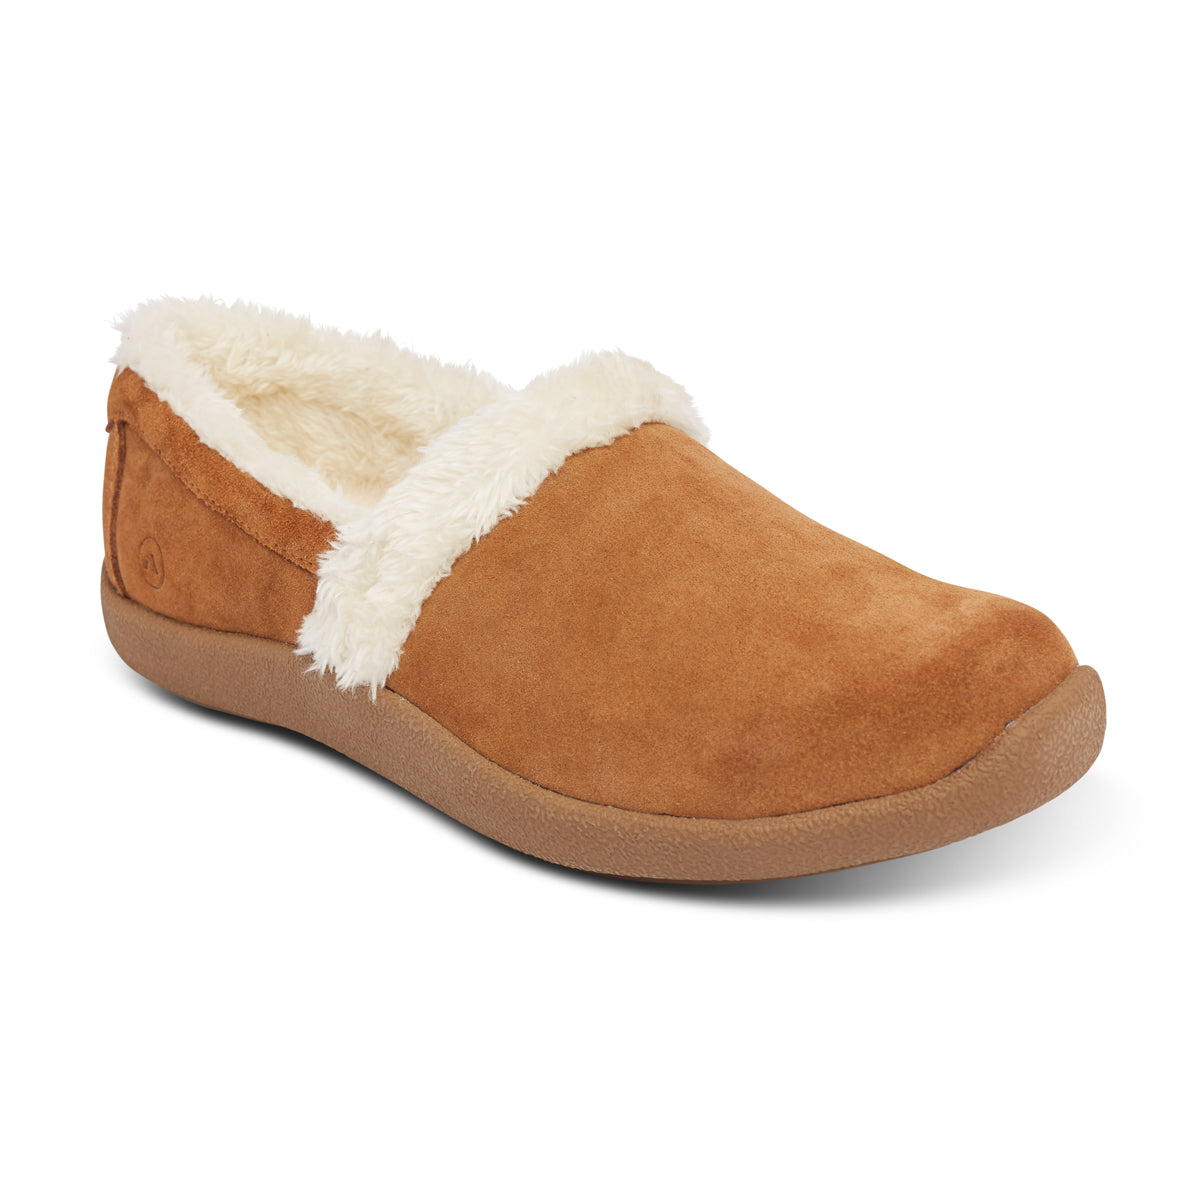 Anodyne Women's No. 21 Slipper Smooth Toe (camel)